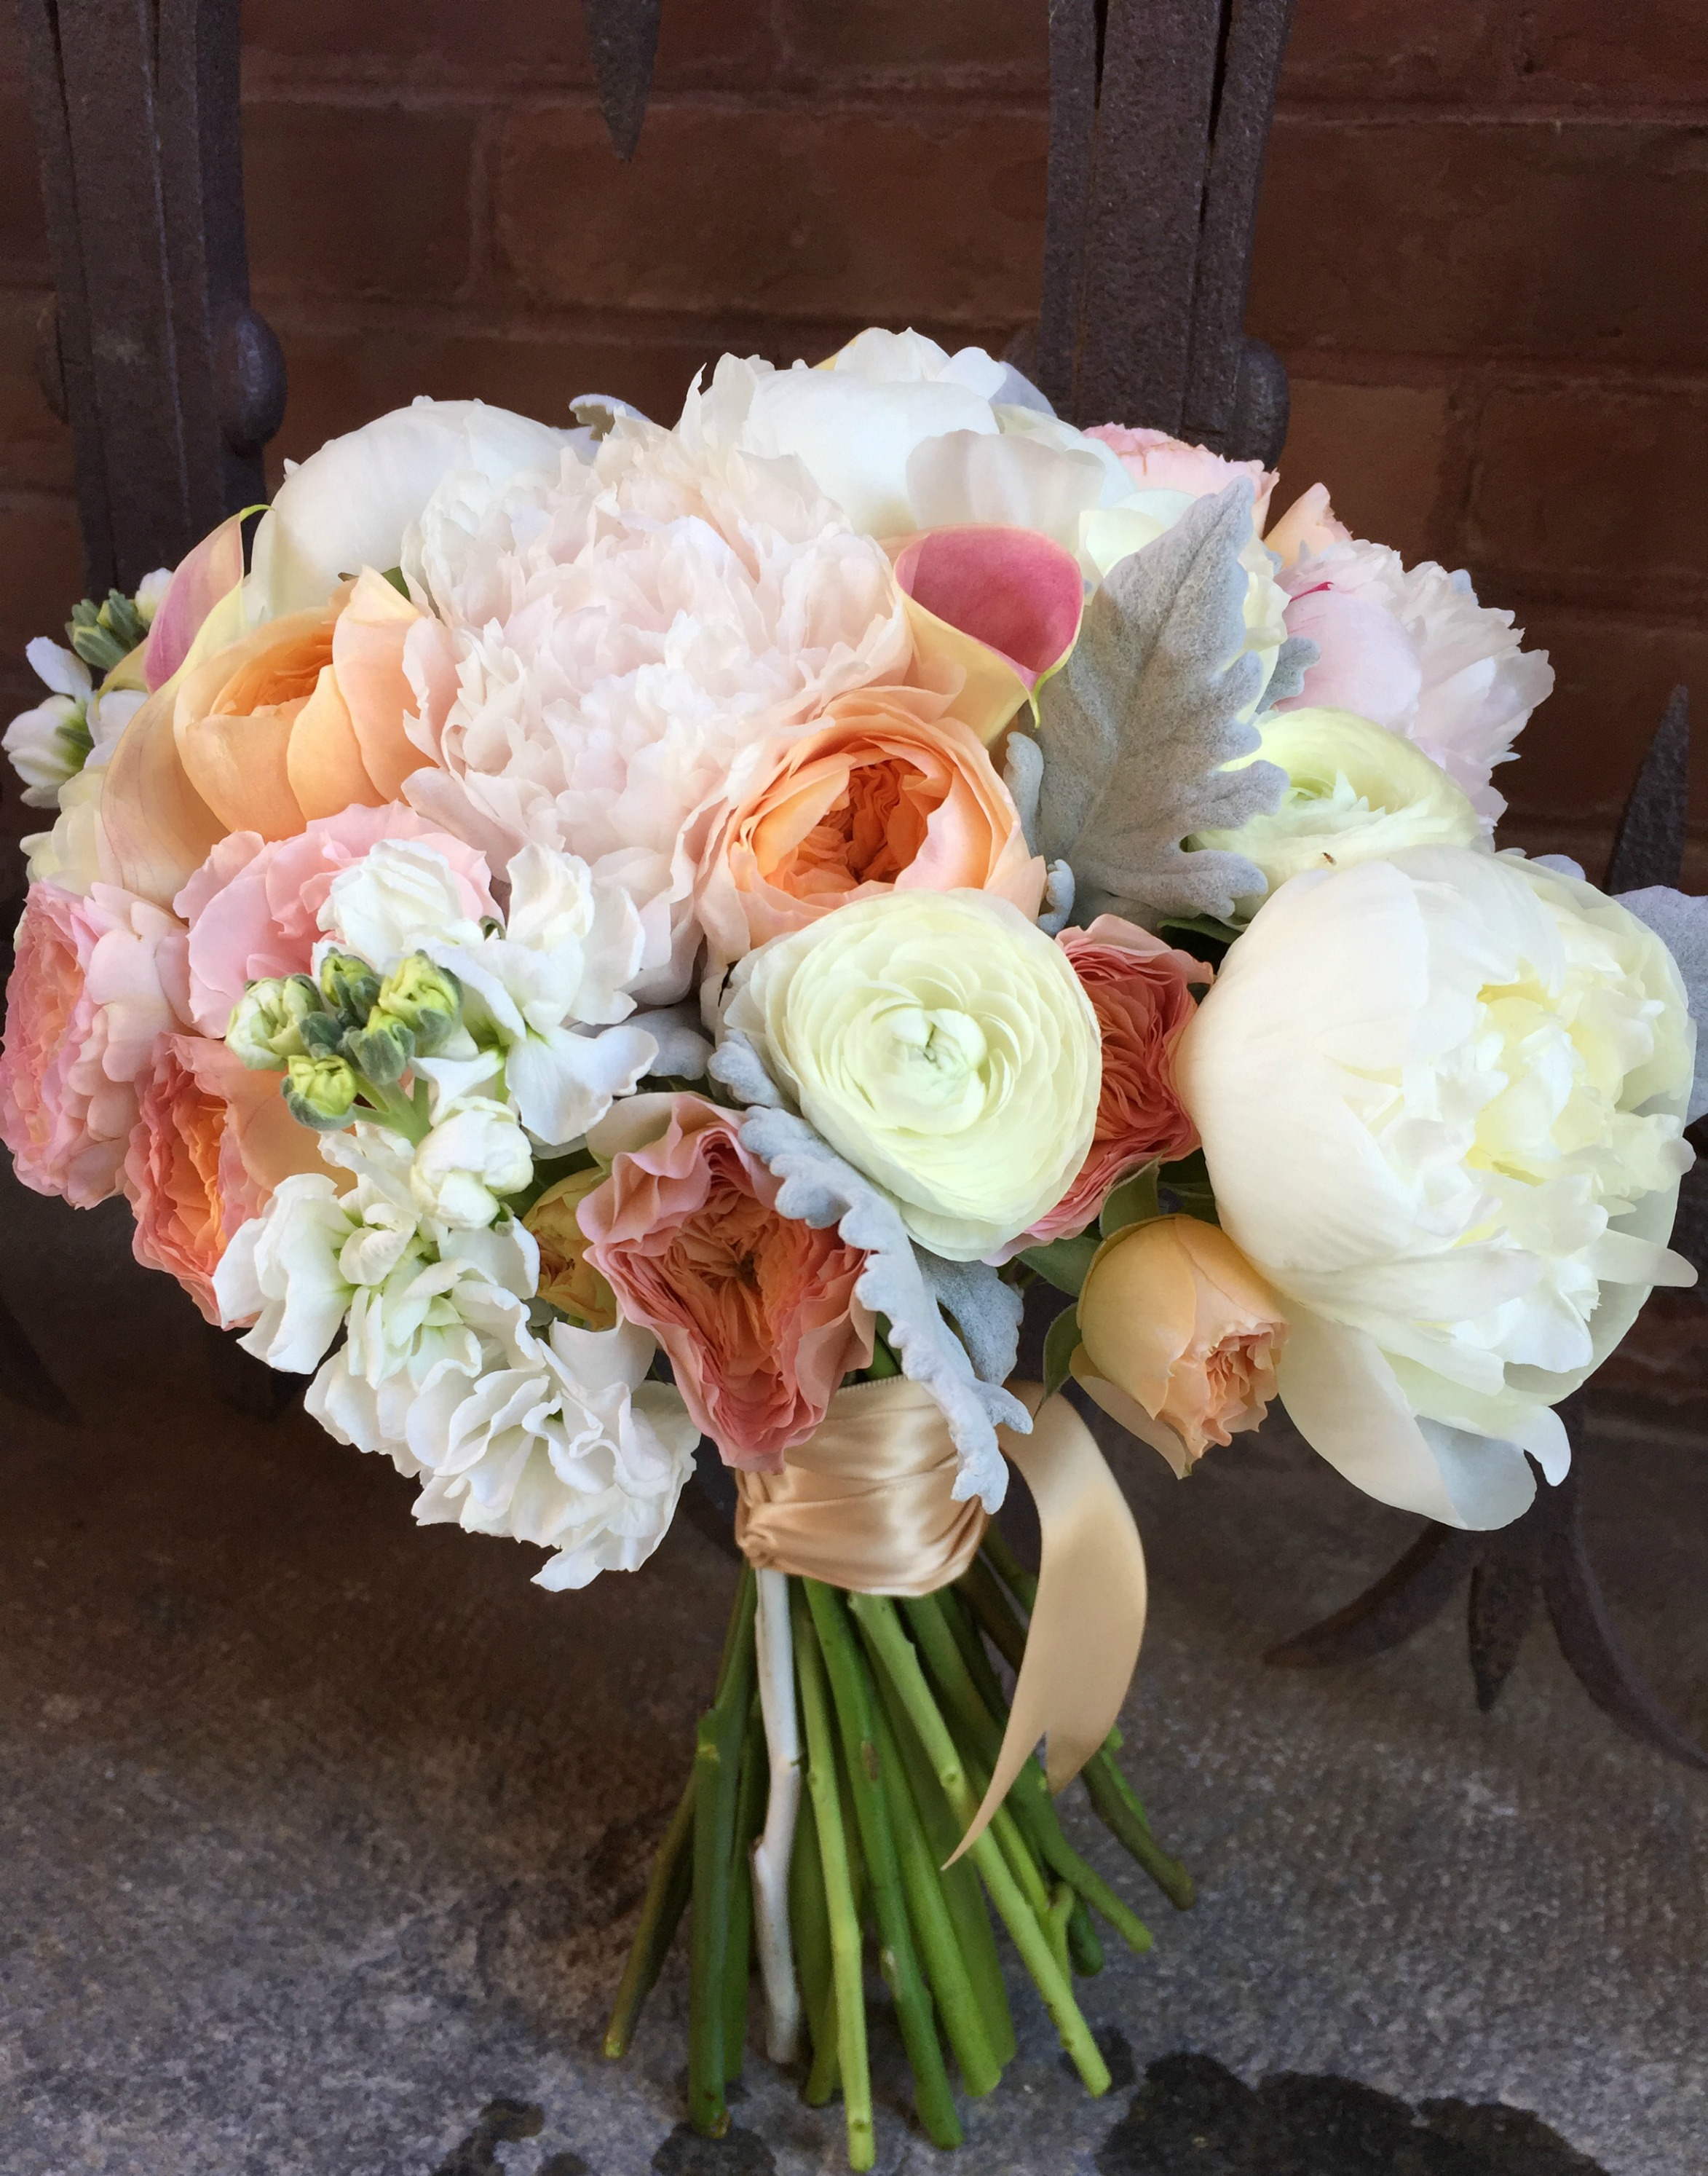 floral artistry, Alison Ellis, Wedding at The Coach Barn, Shelburne Farms